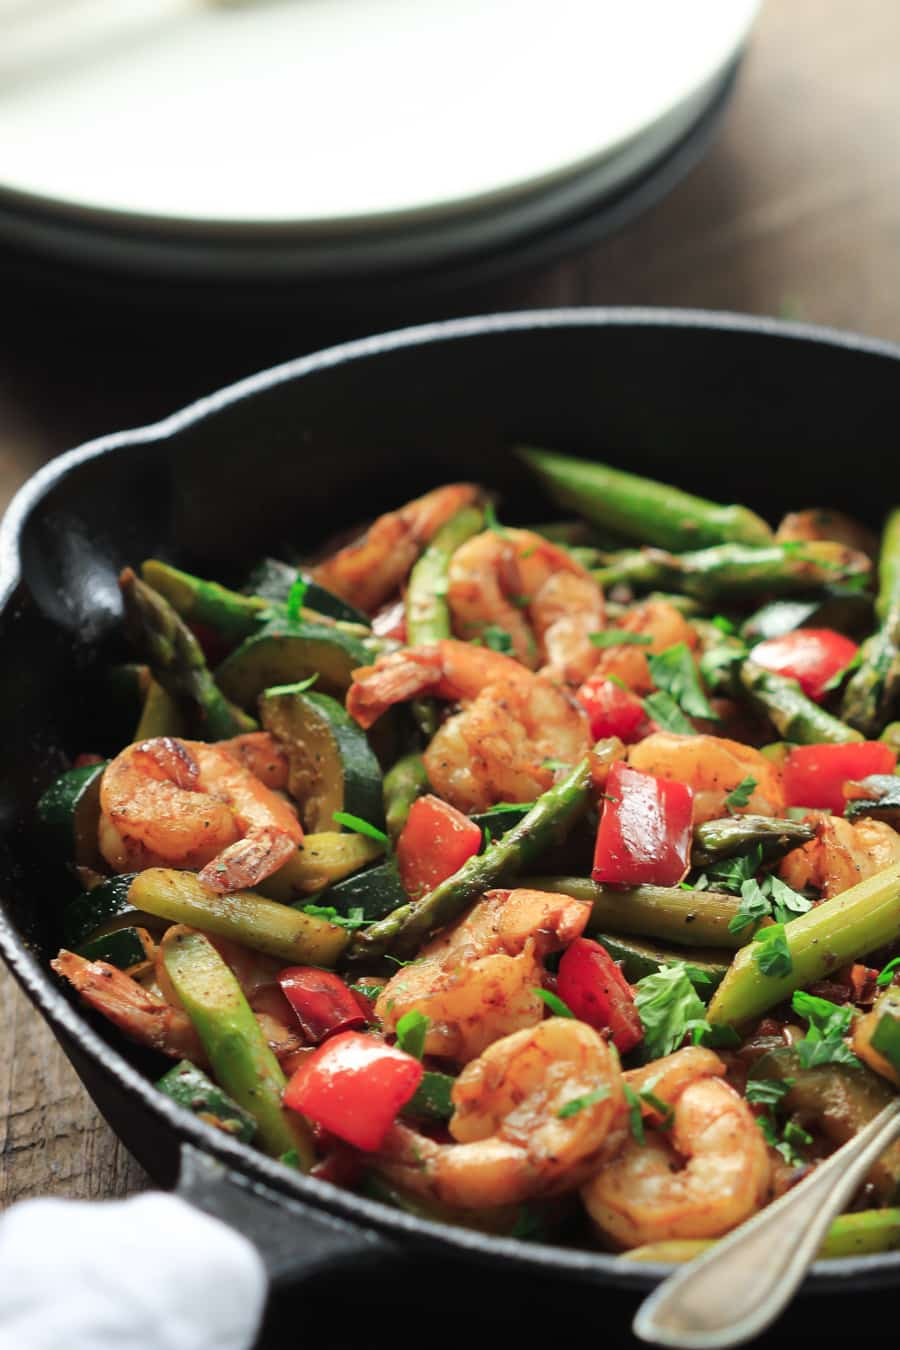 close up view of a cast iron skillet containing shrimp and vegetables